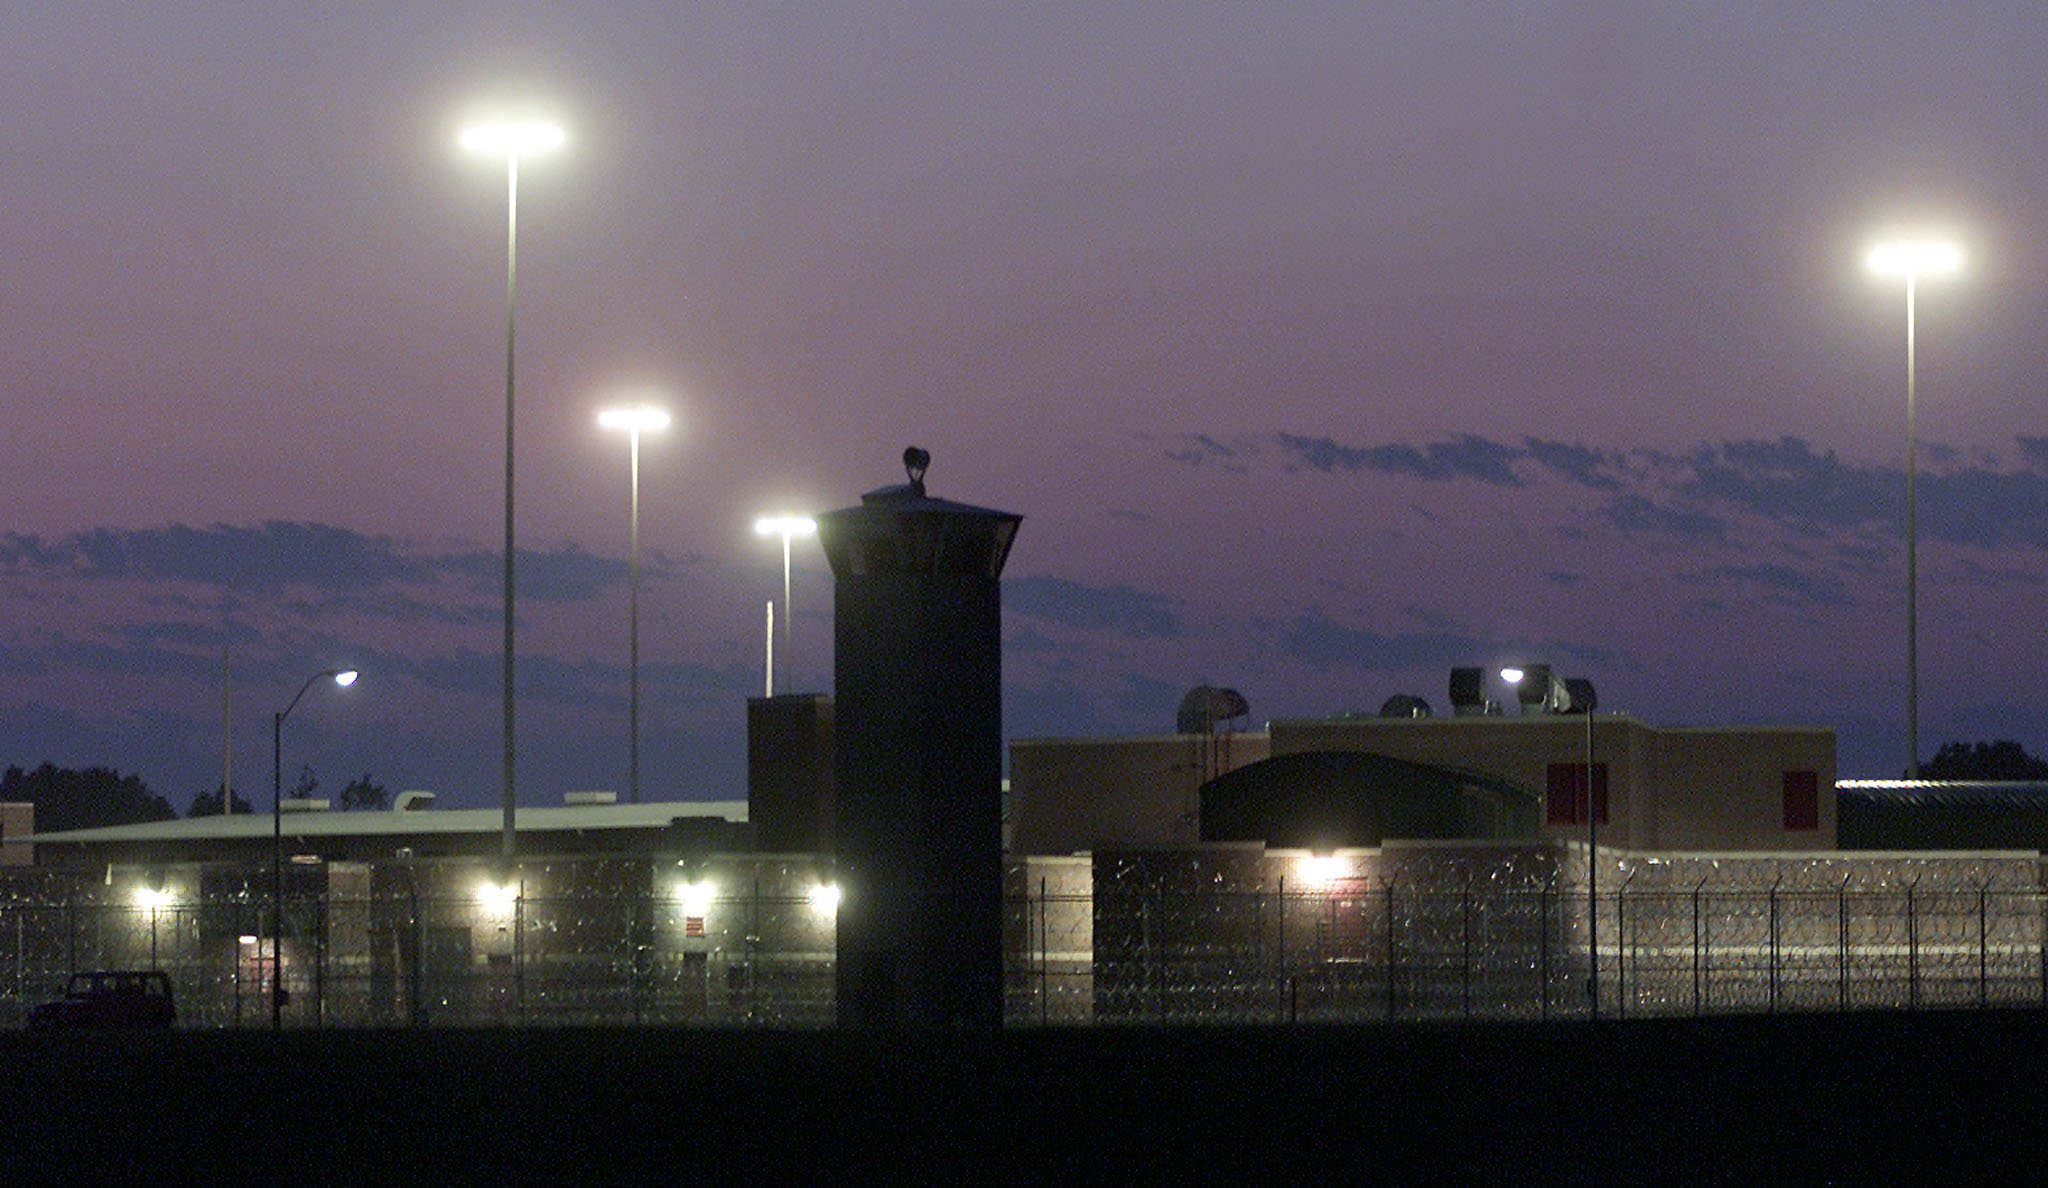 The most protected prisons in the world